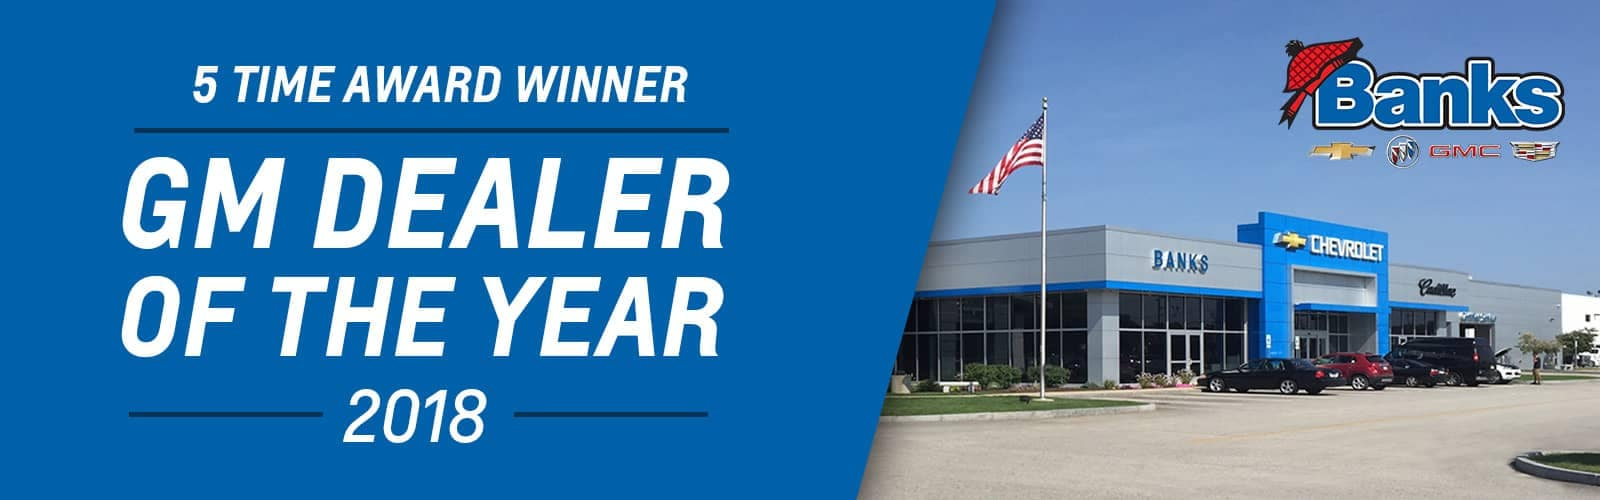 BanksAuto-Banner-GM-DEALER-OF-YEAR (1)